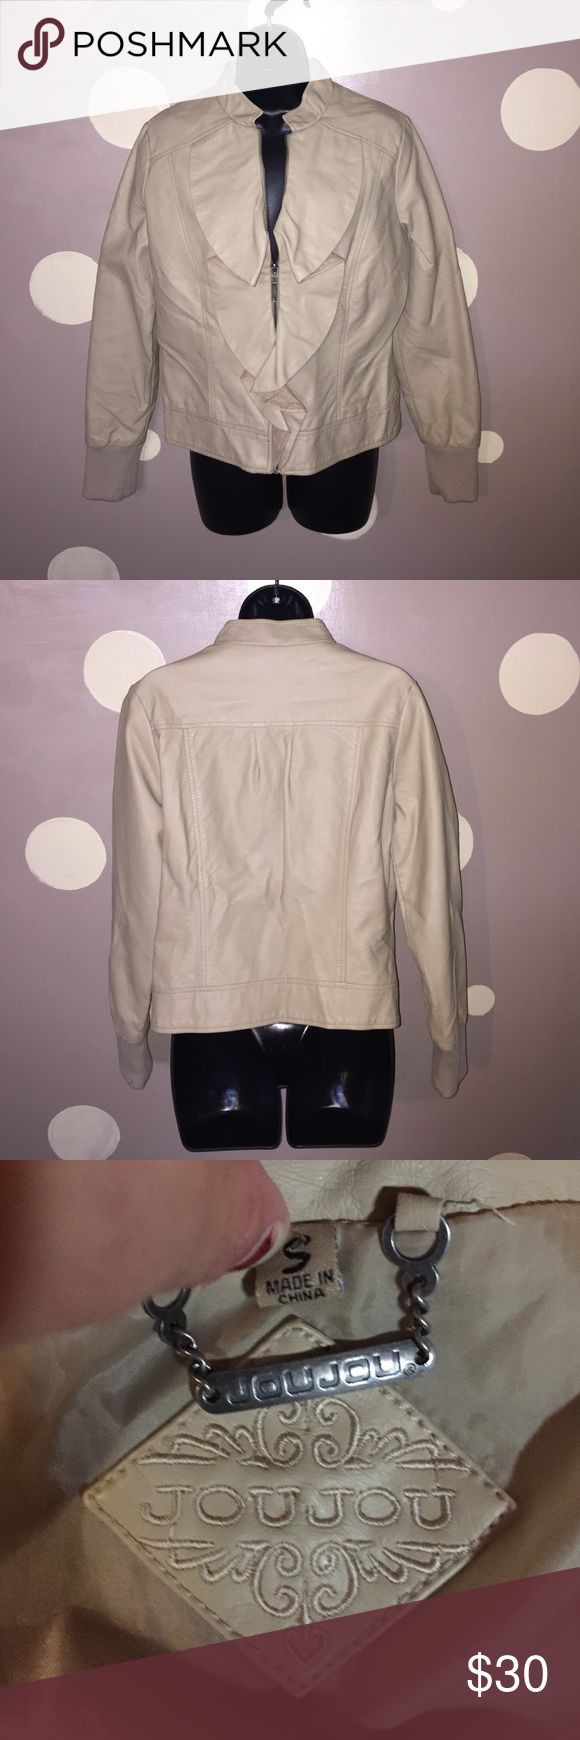 Feminine juju tan bomber jacket Tan bomber jacket with ruffled accent up the middle. In good condition. Lying flat and unstretched bust roughly measures 18 inches length 22 1/2 inches sleeve 25 inches Jou Jou Jackets & Coats